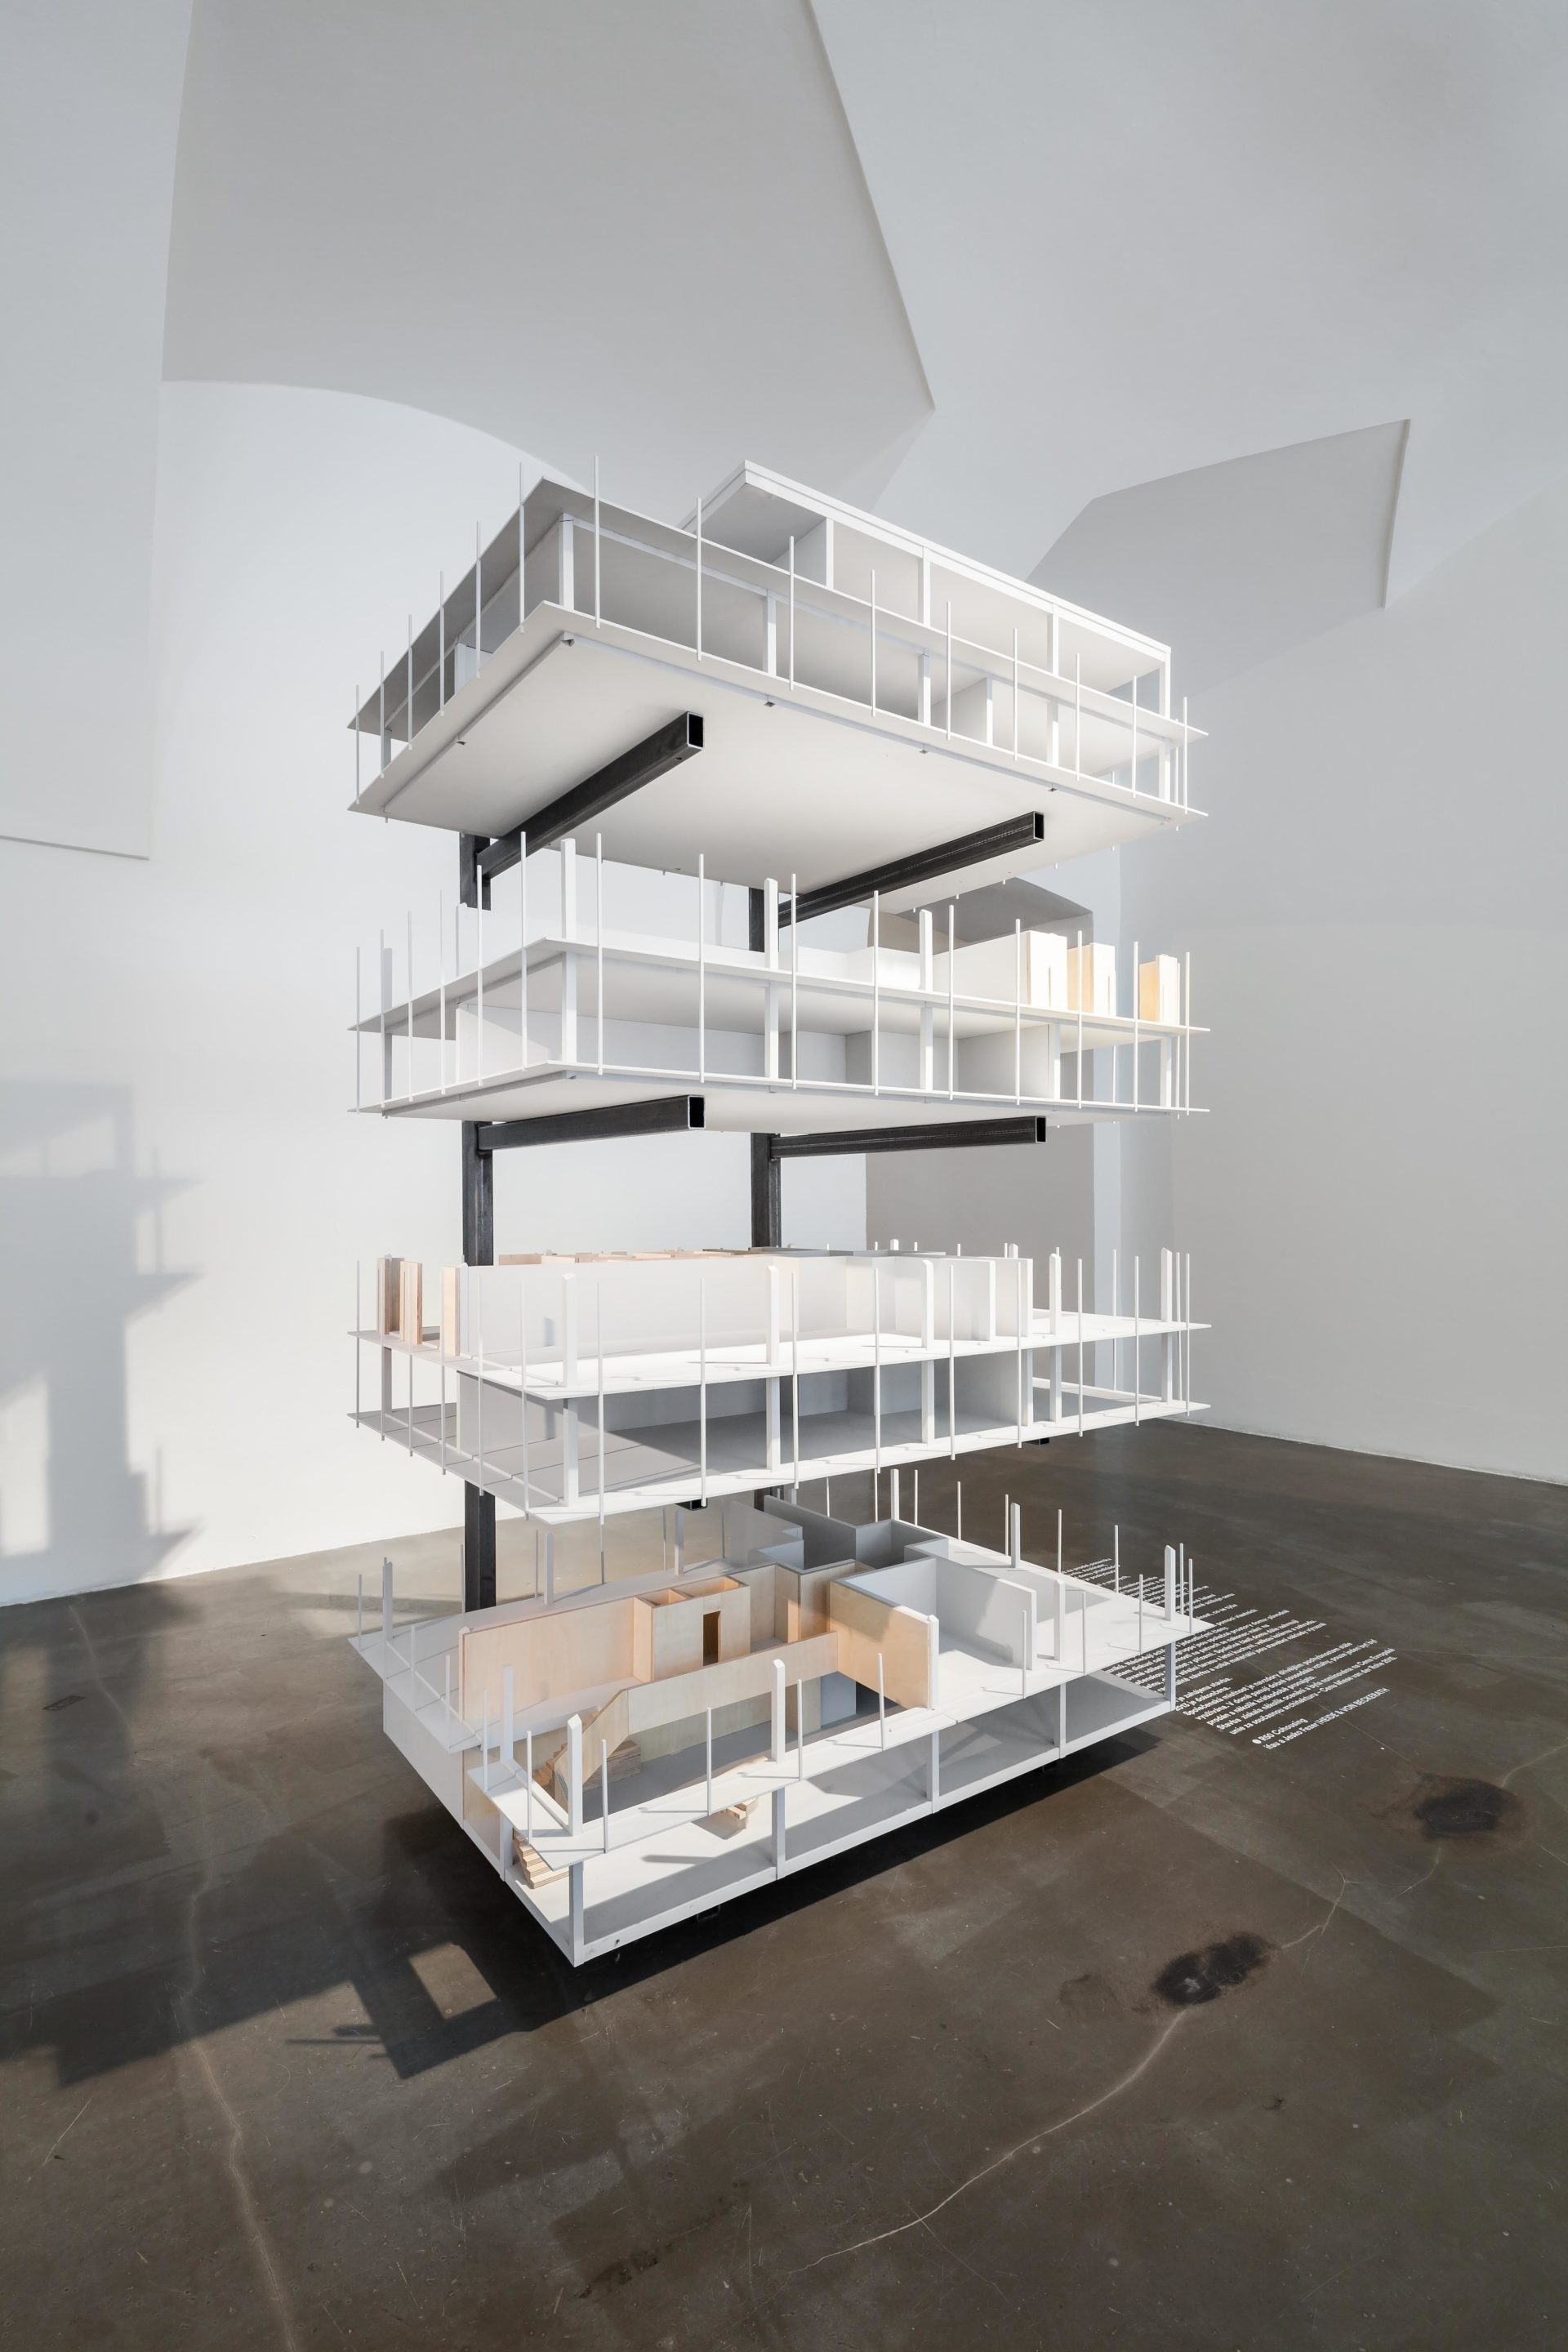 Exhibition Baugruppe ist super! Contemporary Housing – Inspiration ...